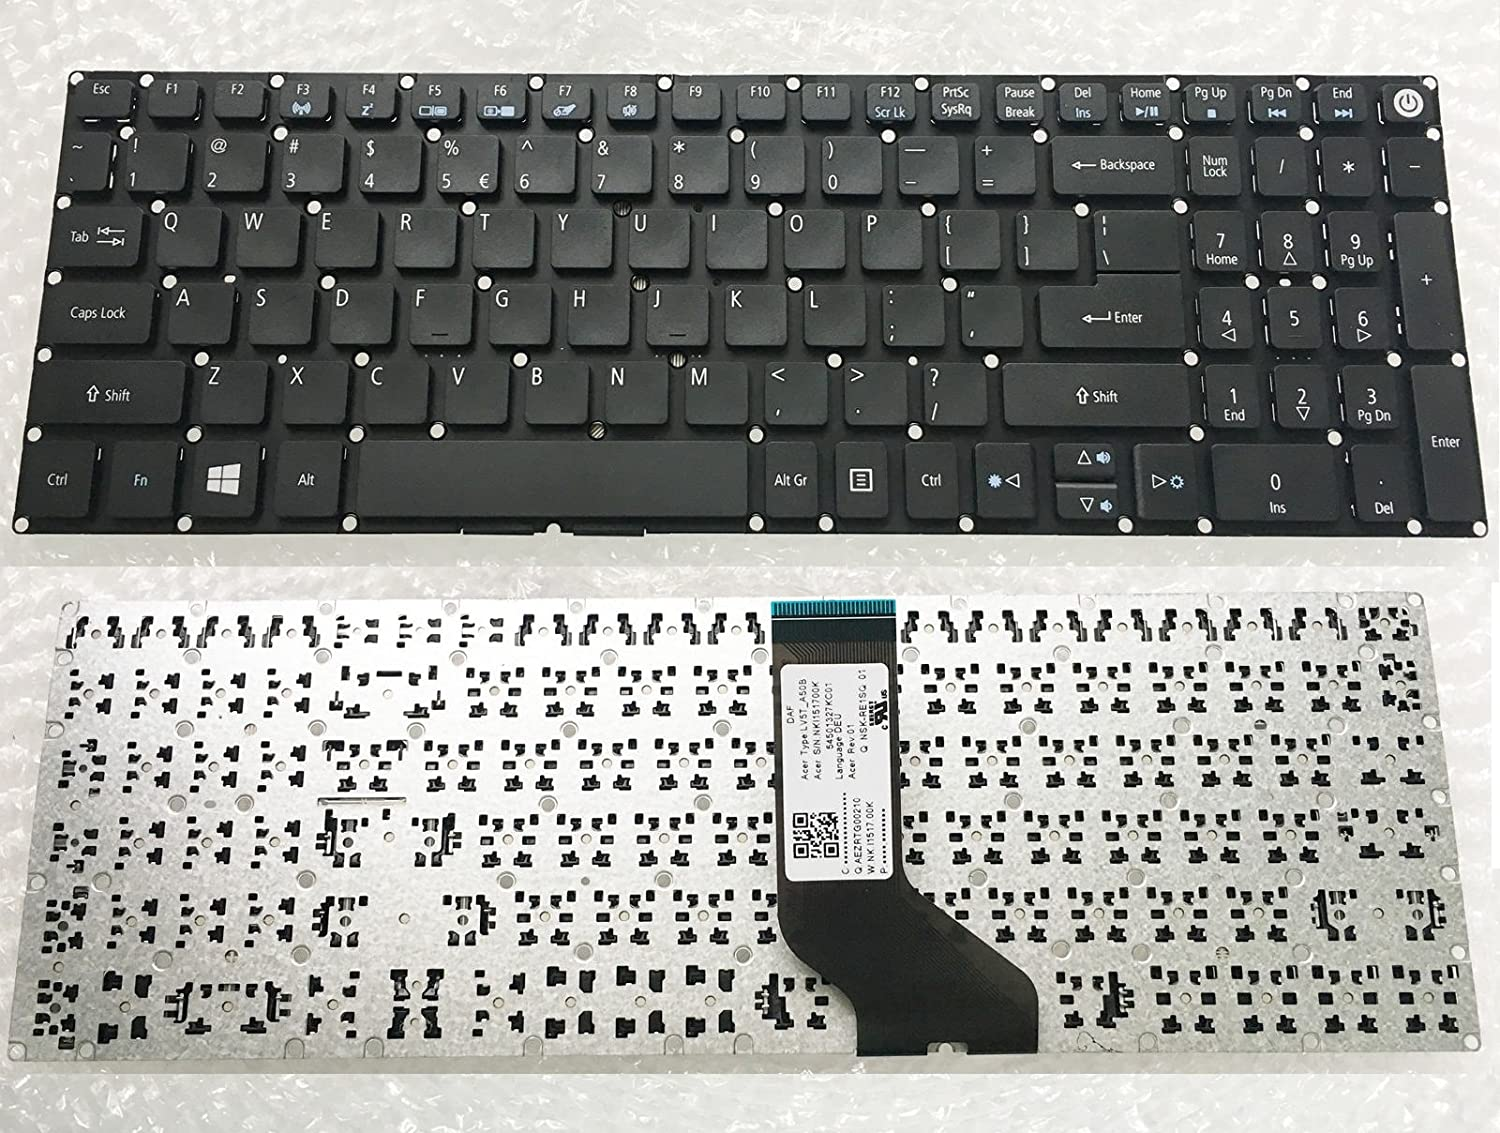 wangpeng Laptop keyboard For Acer Aspire E5-575G-52RJ E5-575G-53VG E5-575G Notebook PC